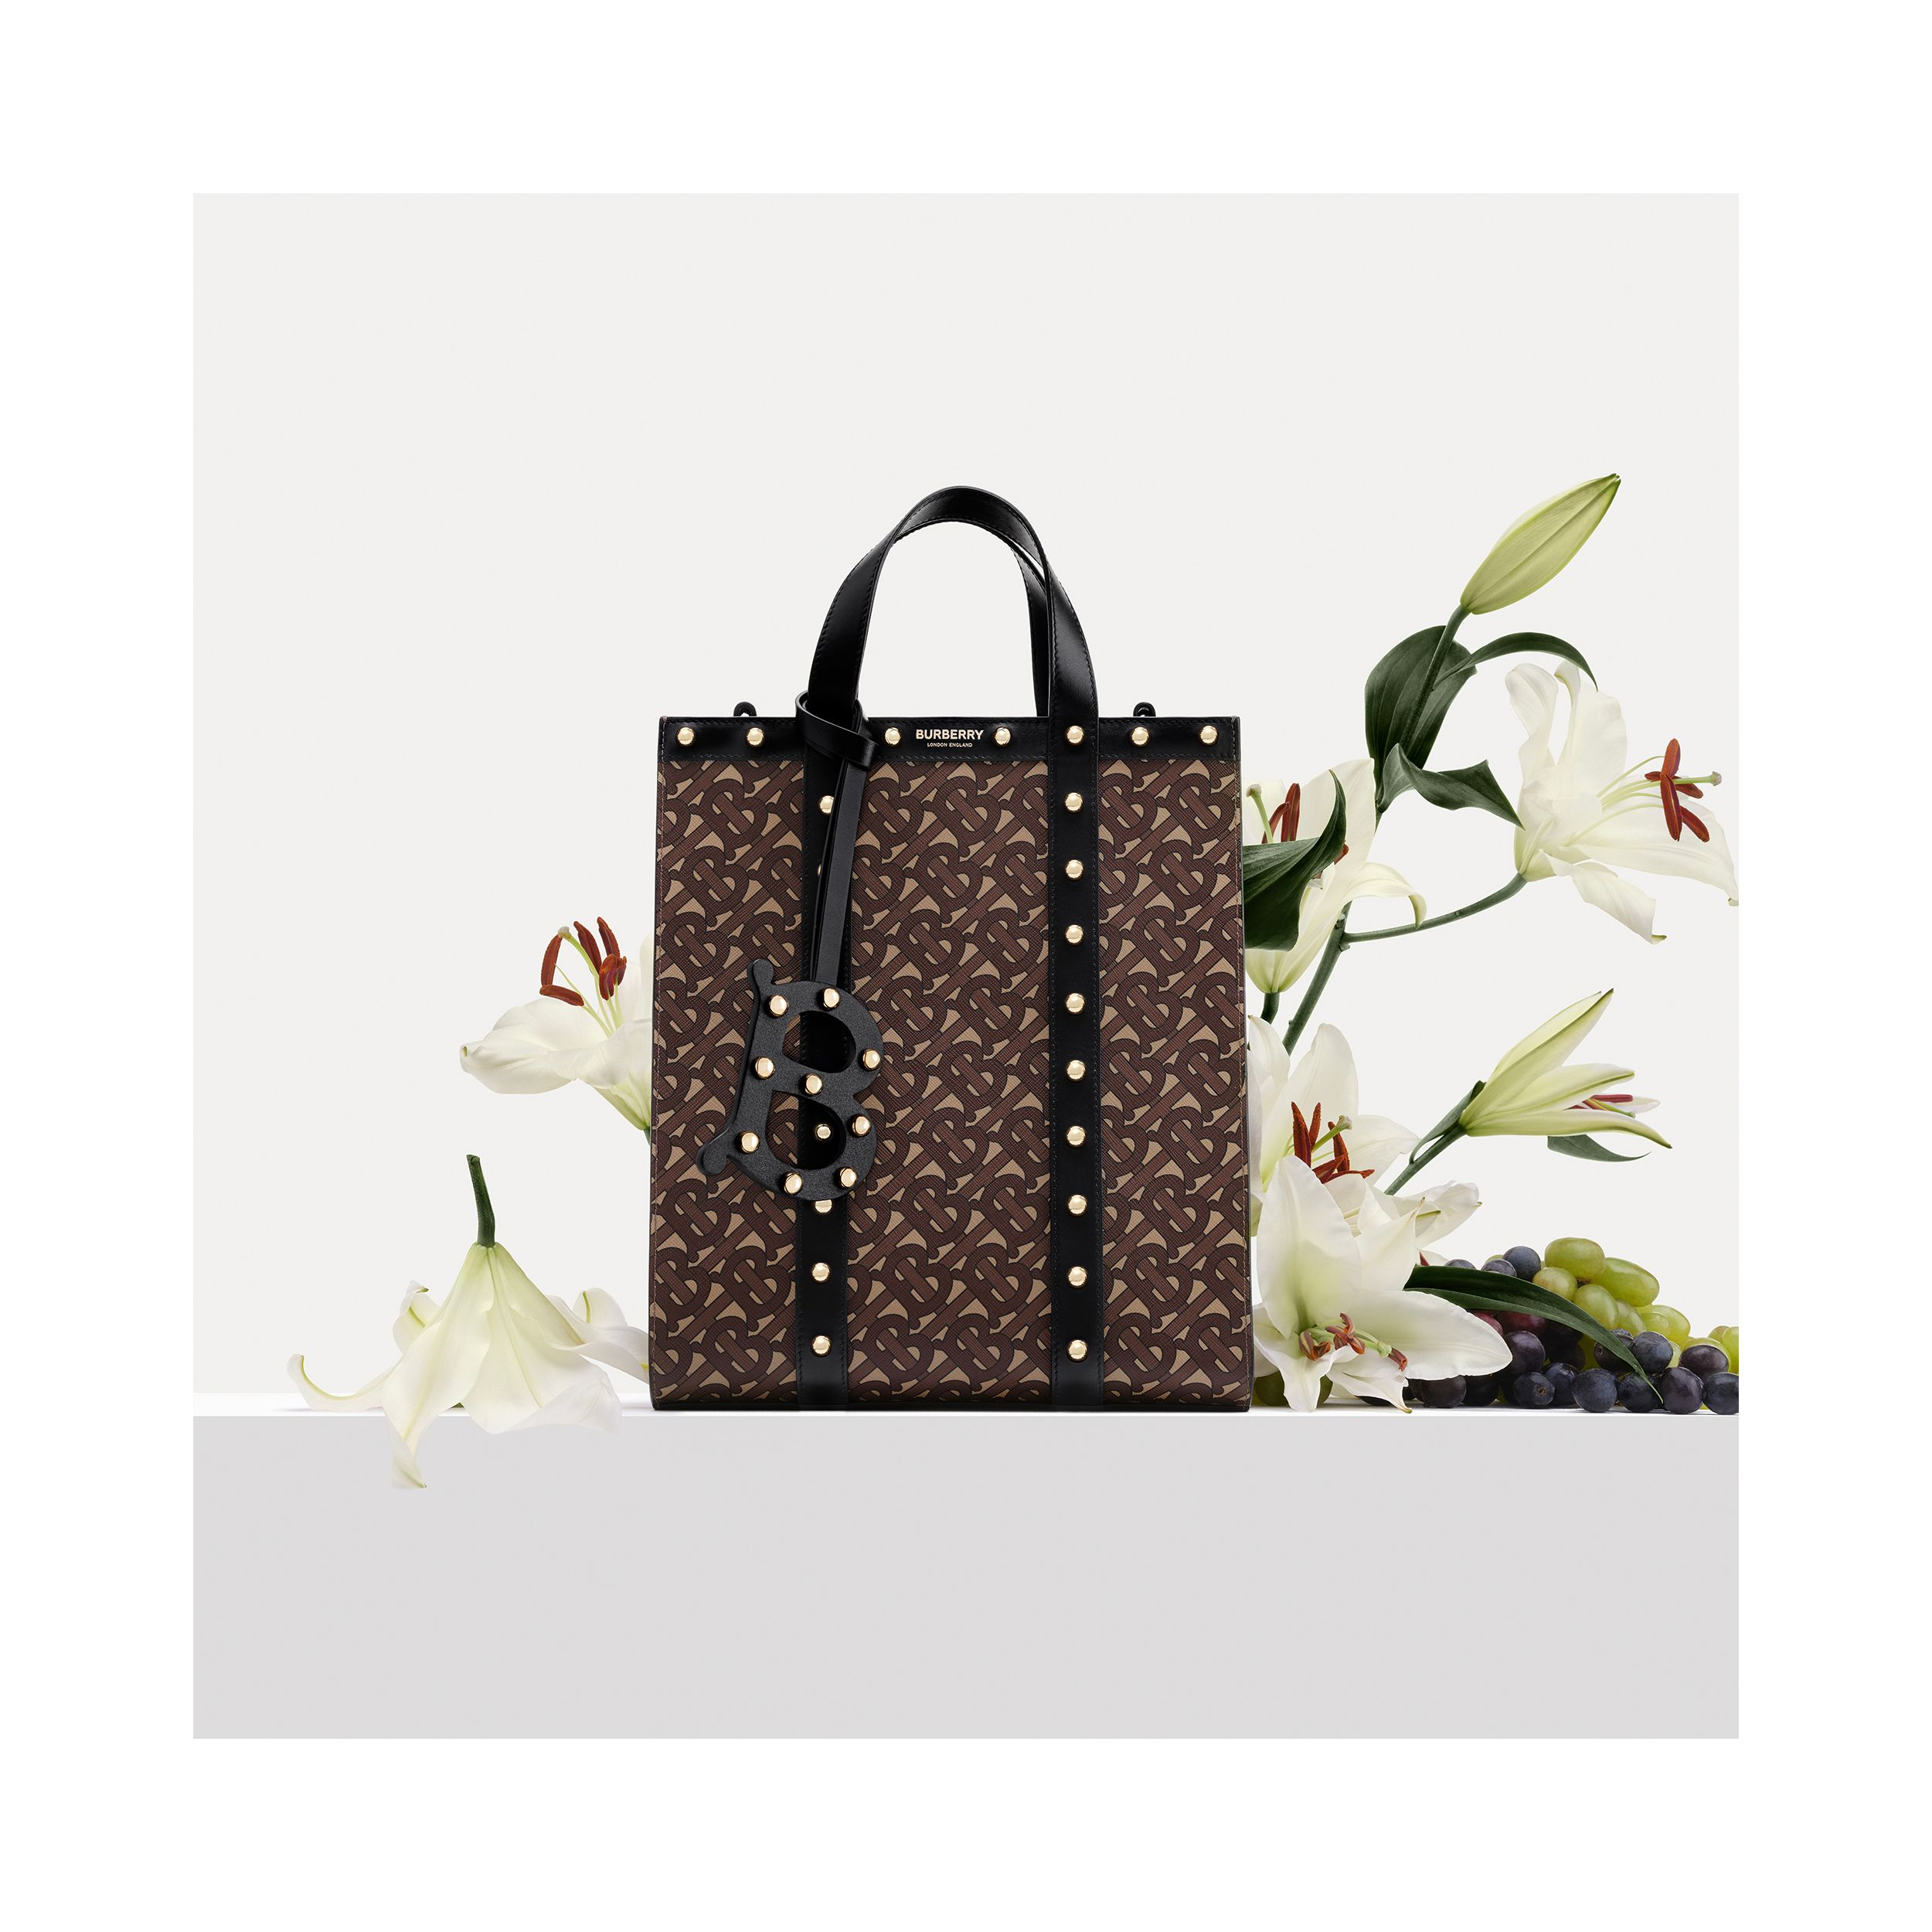 Monogram Print E-canvas Portrait Tote Bag in Black | Burberry - 2